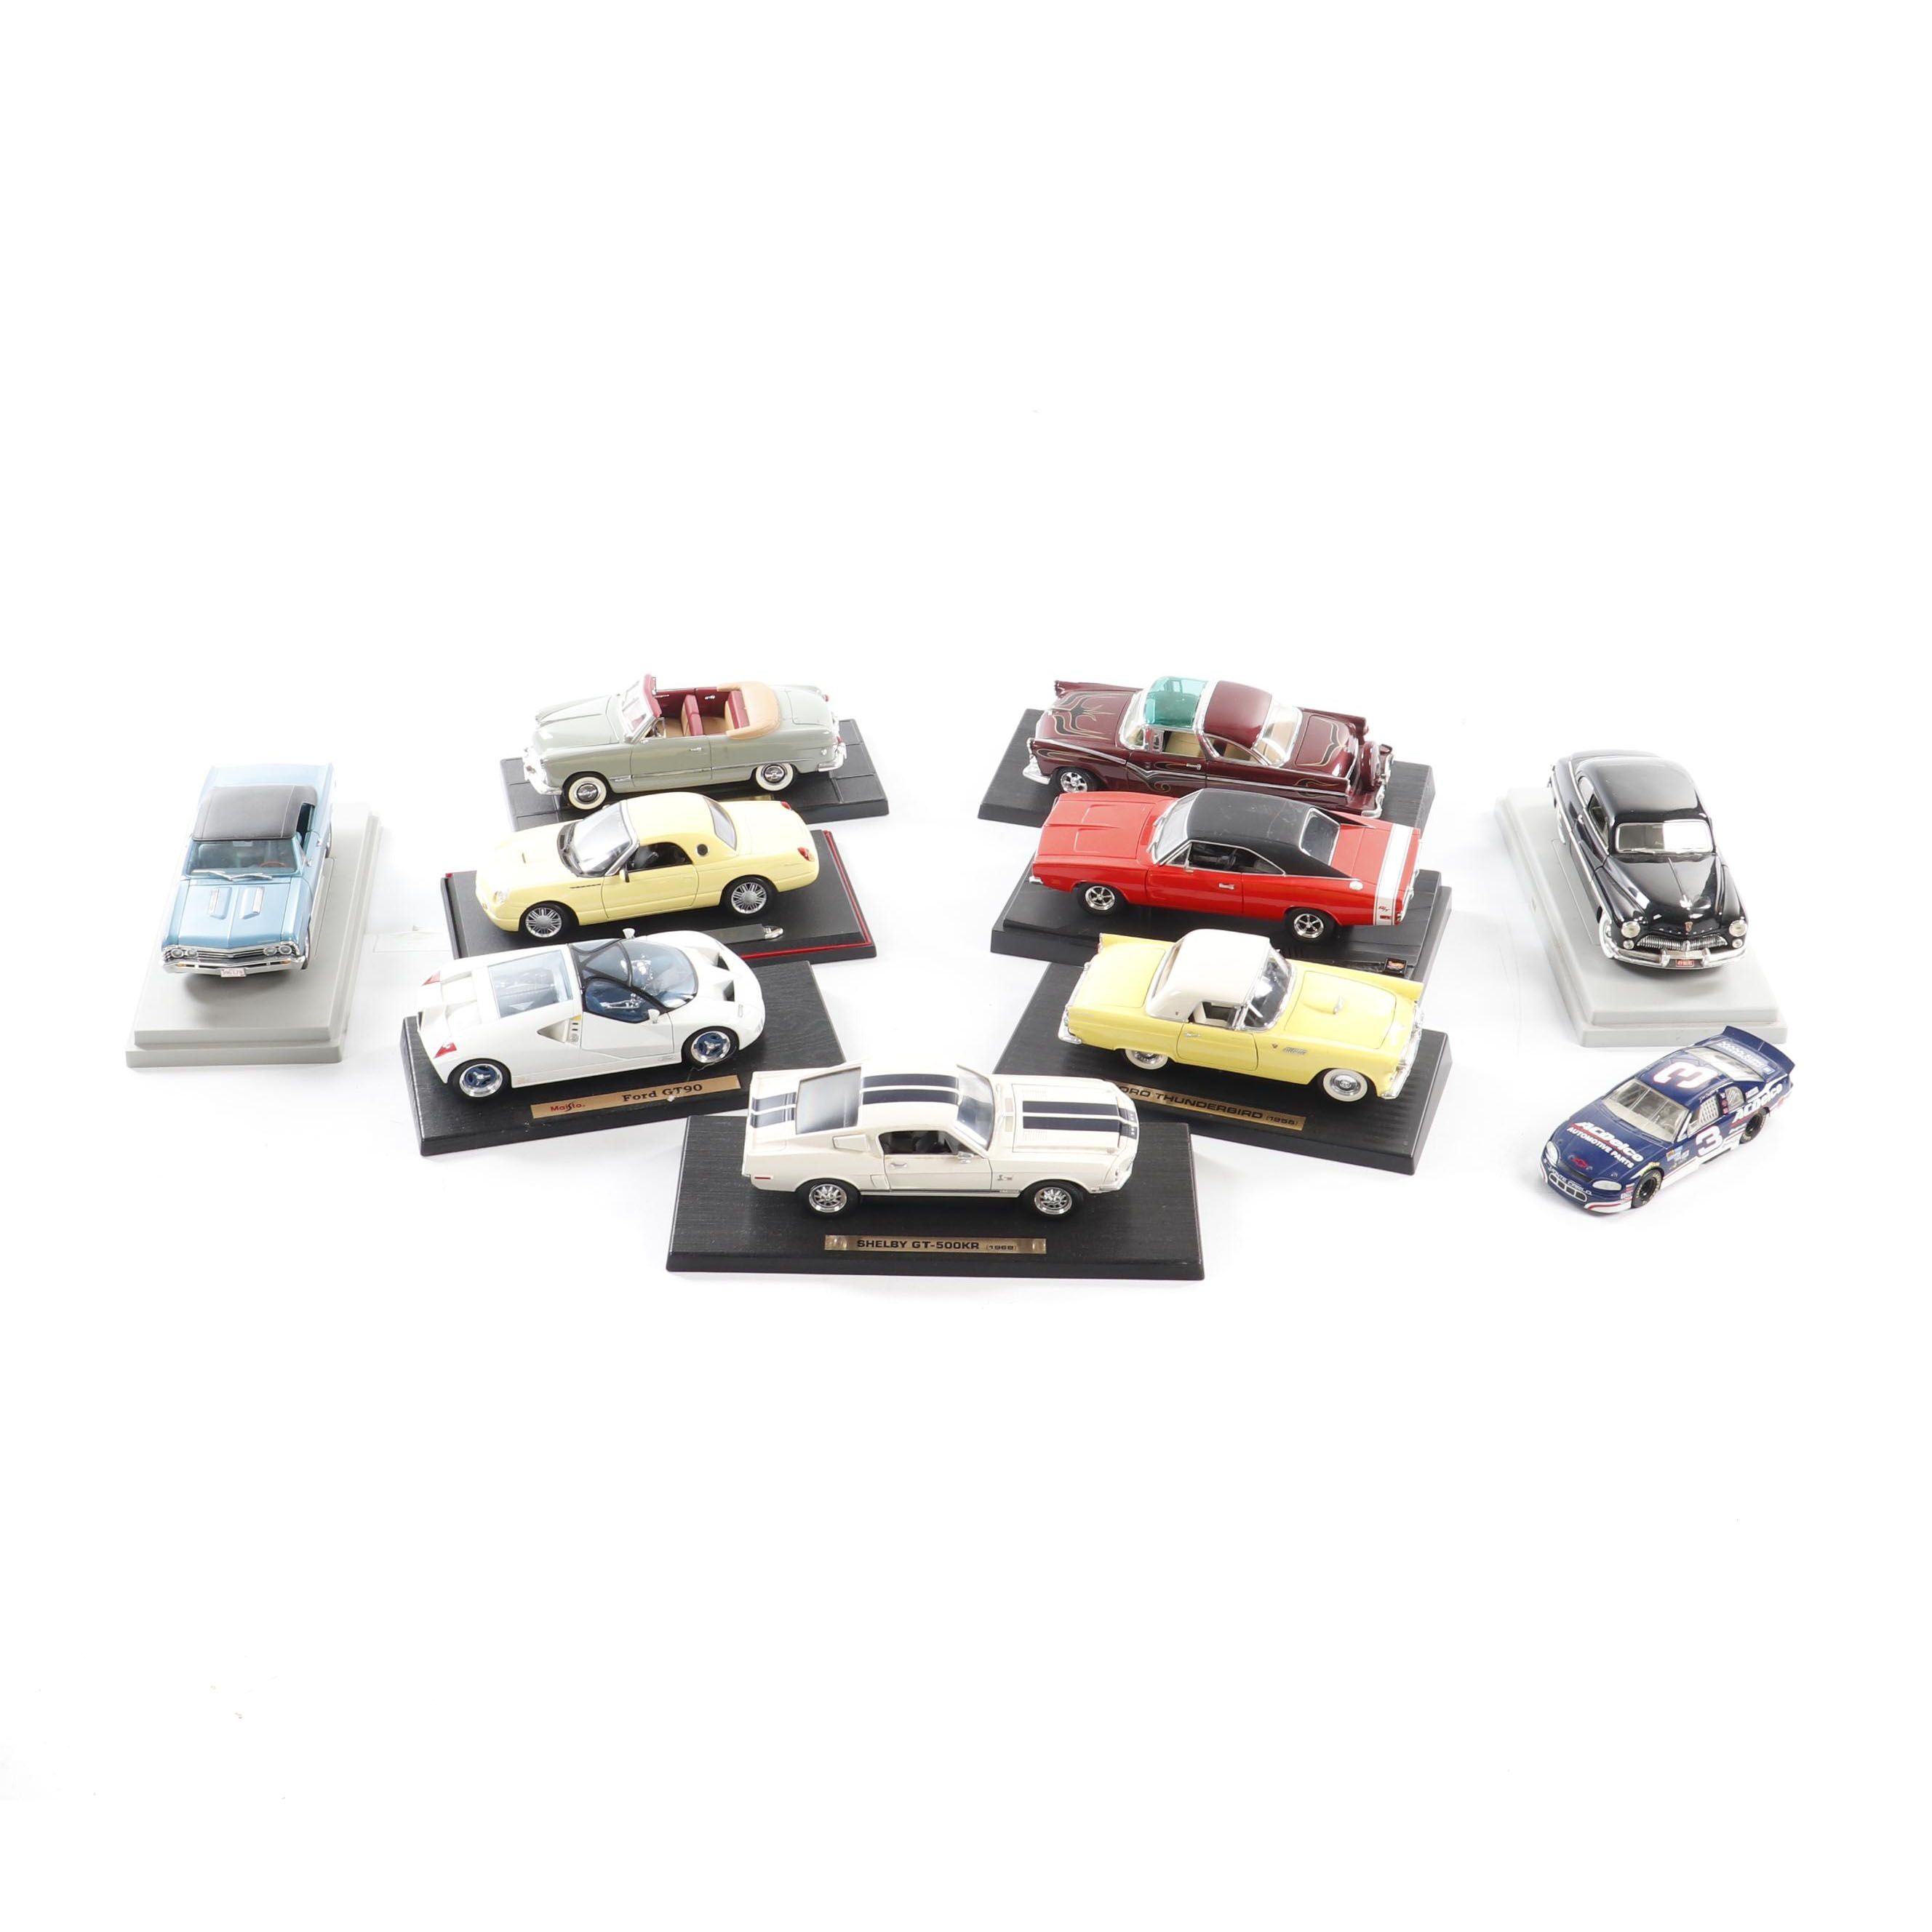 Maisto, Mira, Hot Wheels and Other Die-Cast Vehicles